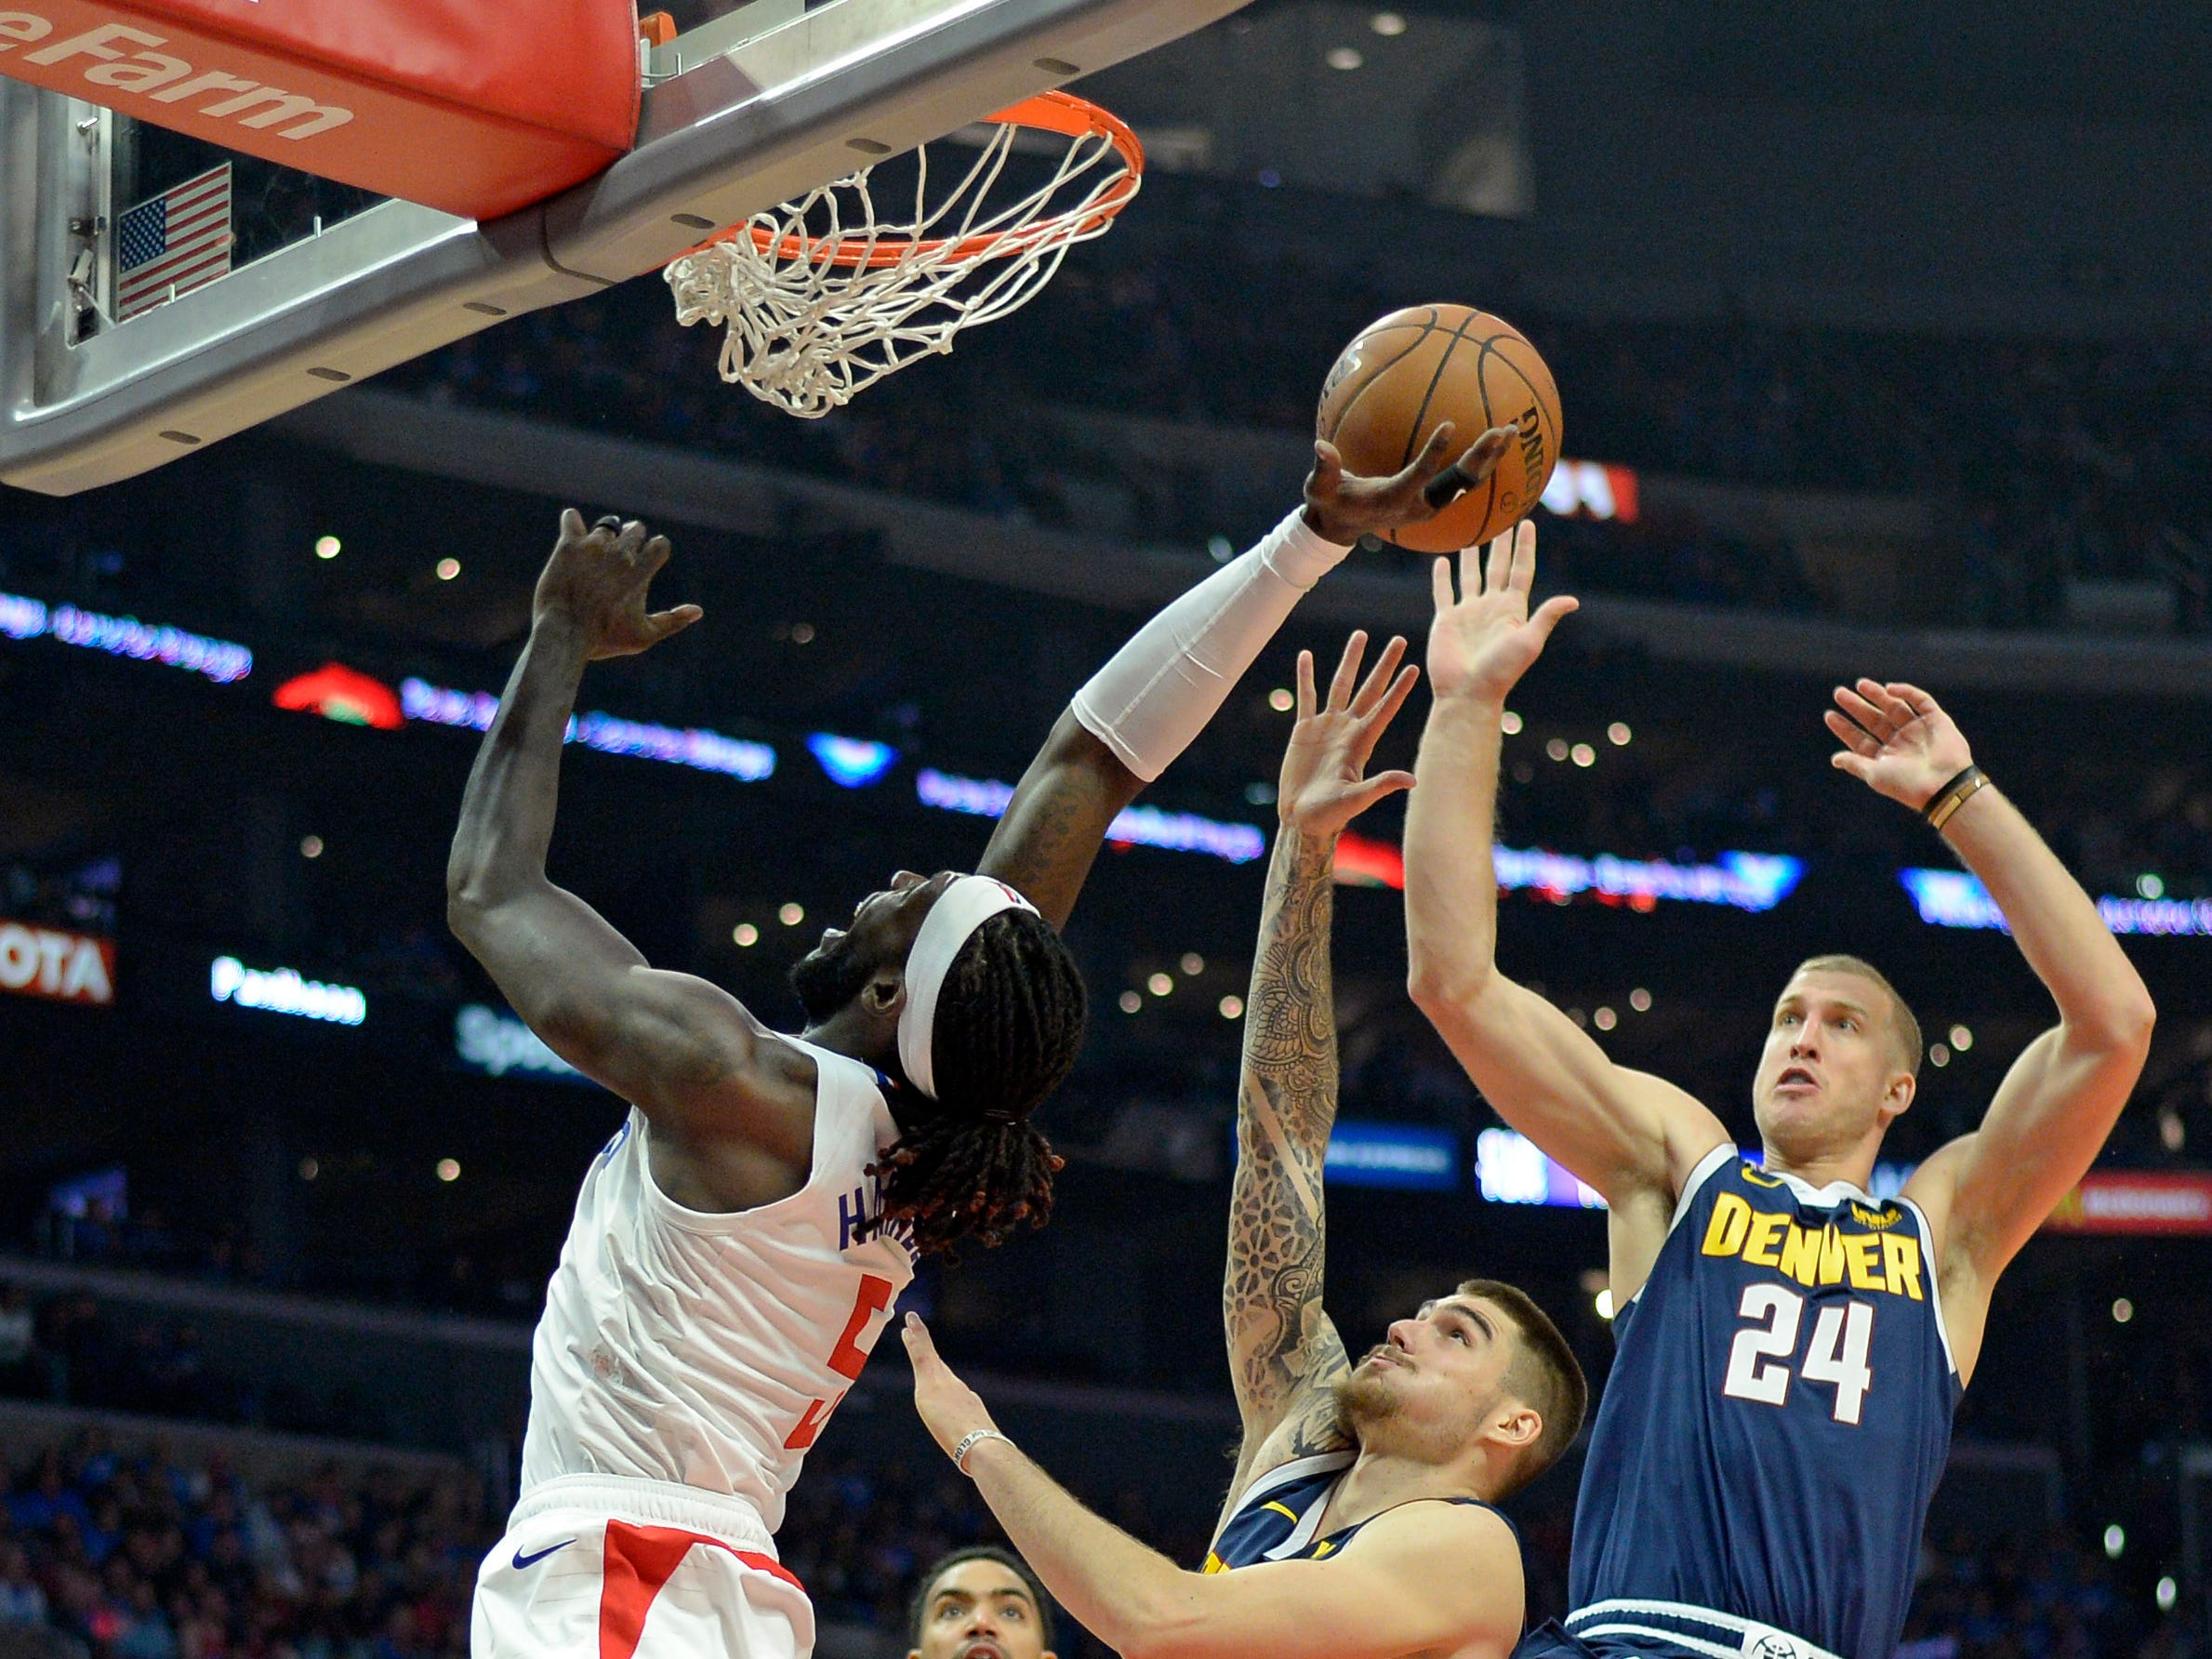 Oct. 17: LA Clippers forward Montrezl Harrell shoots against Denver Nuggets forward Juan Hernangomez (41) and forward Mason Plumlee (24) during the fourth quarter at Staples Center.